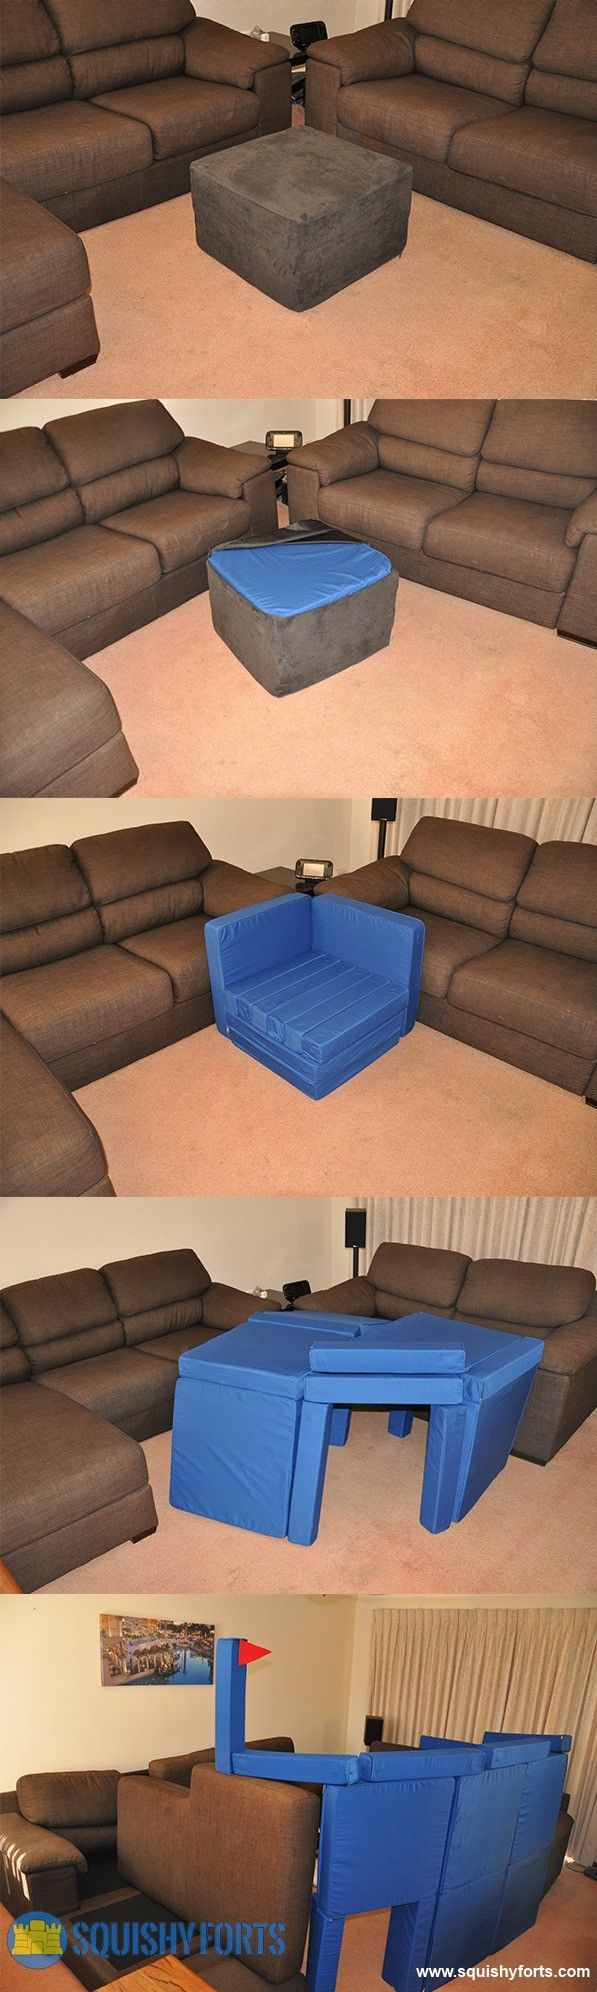 Coolest Thing Ever A Foot Stool That Is Actually Pillow Fort Construction Kit Cause Aunt Megs House Will Be The Place